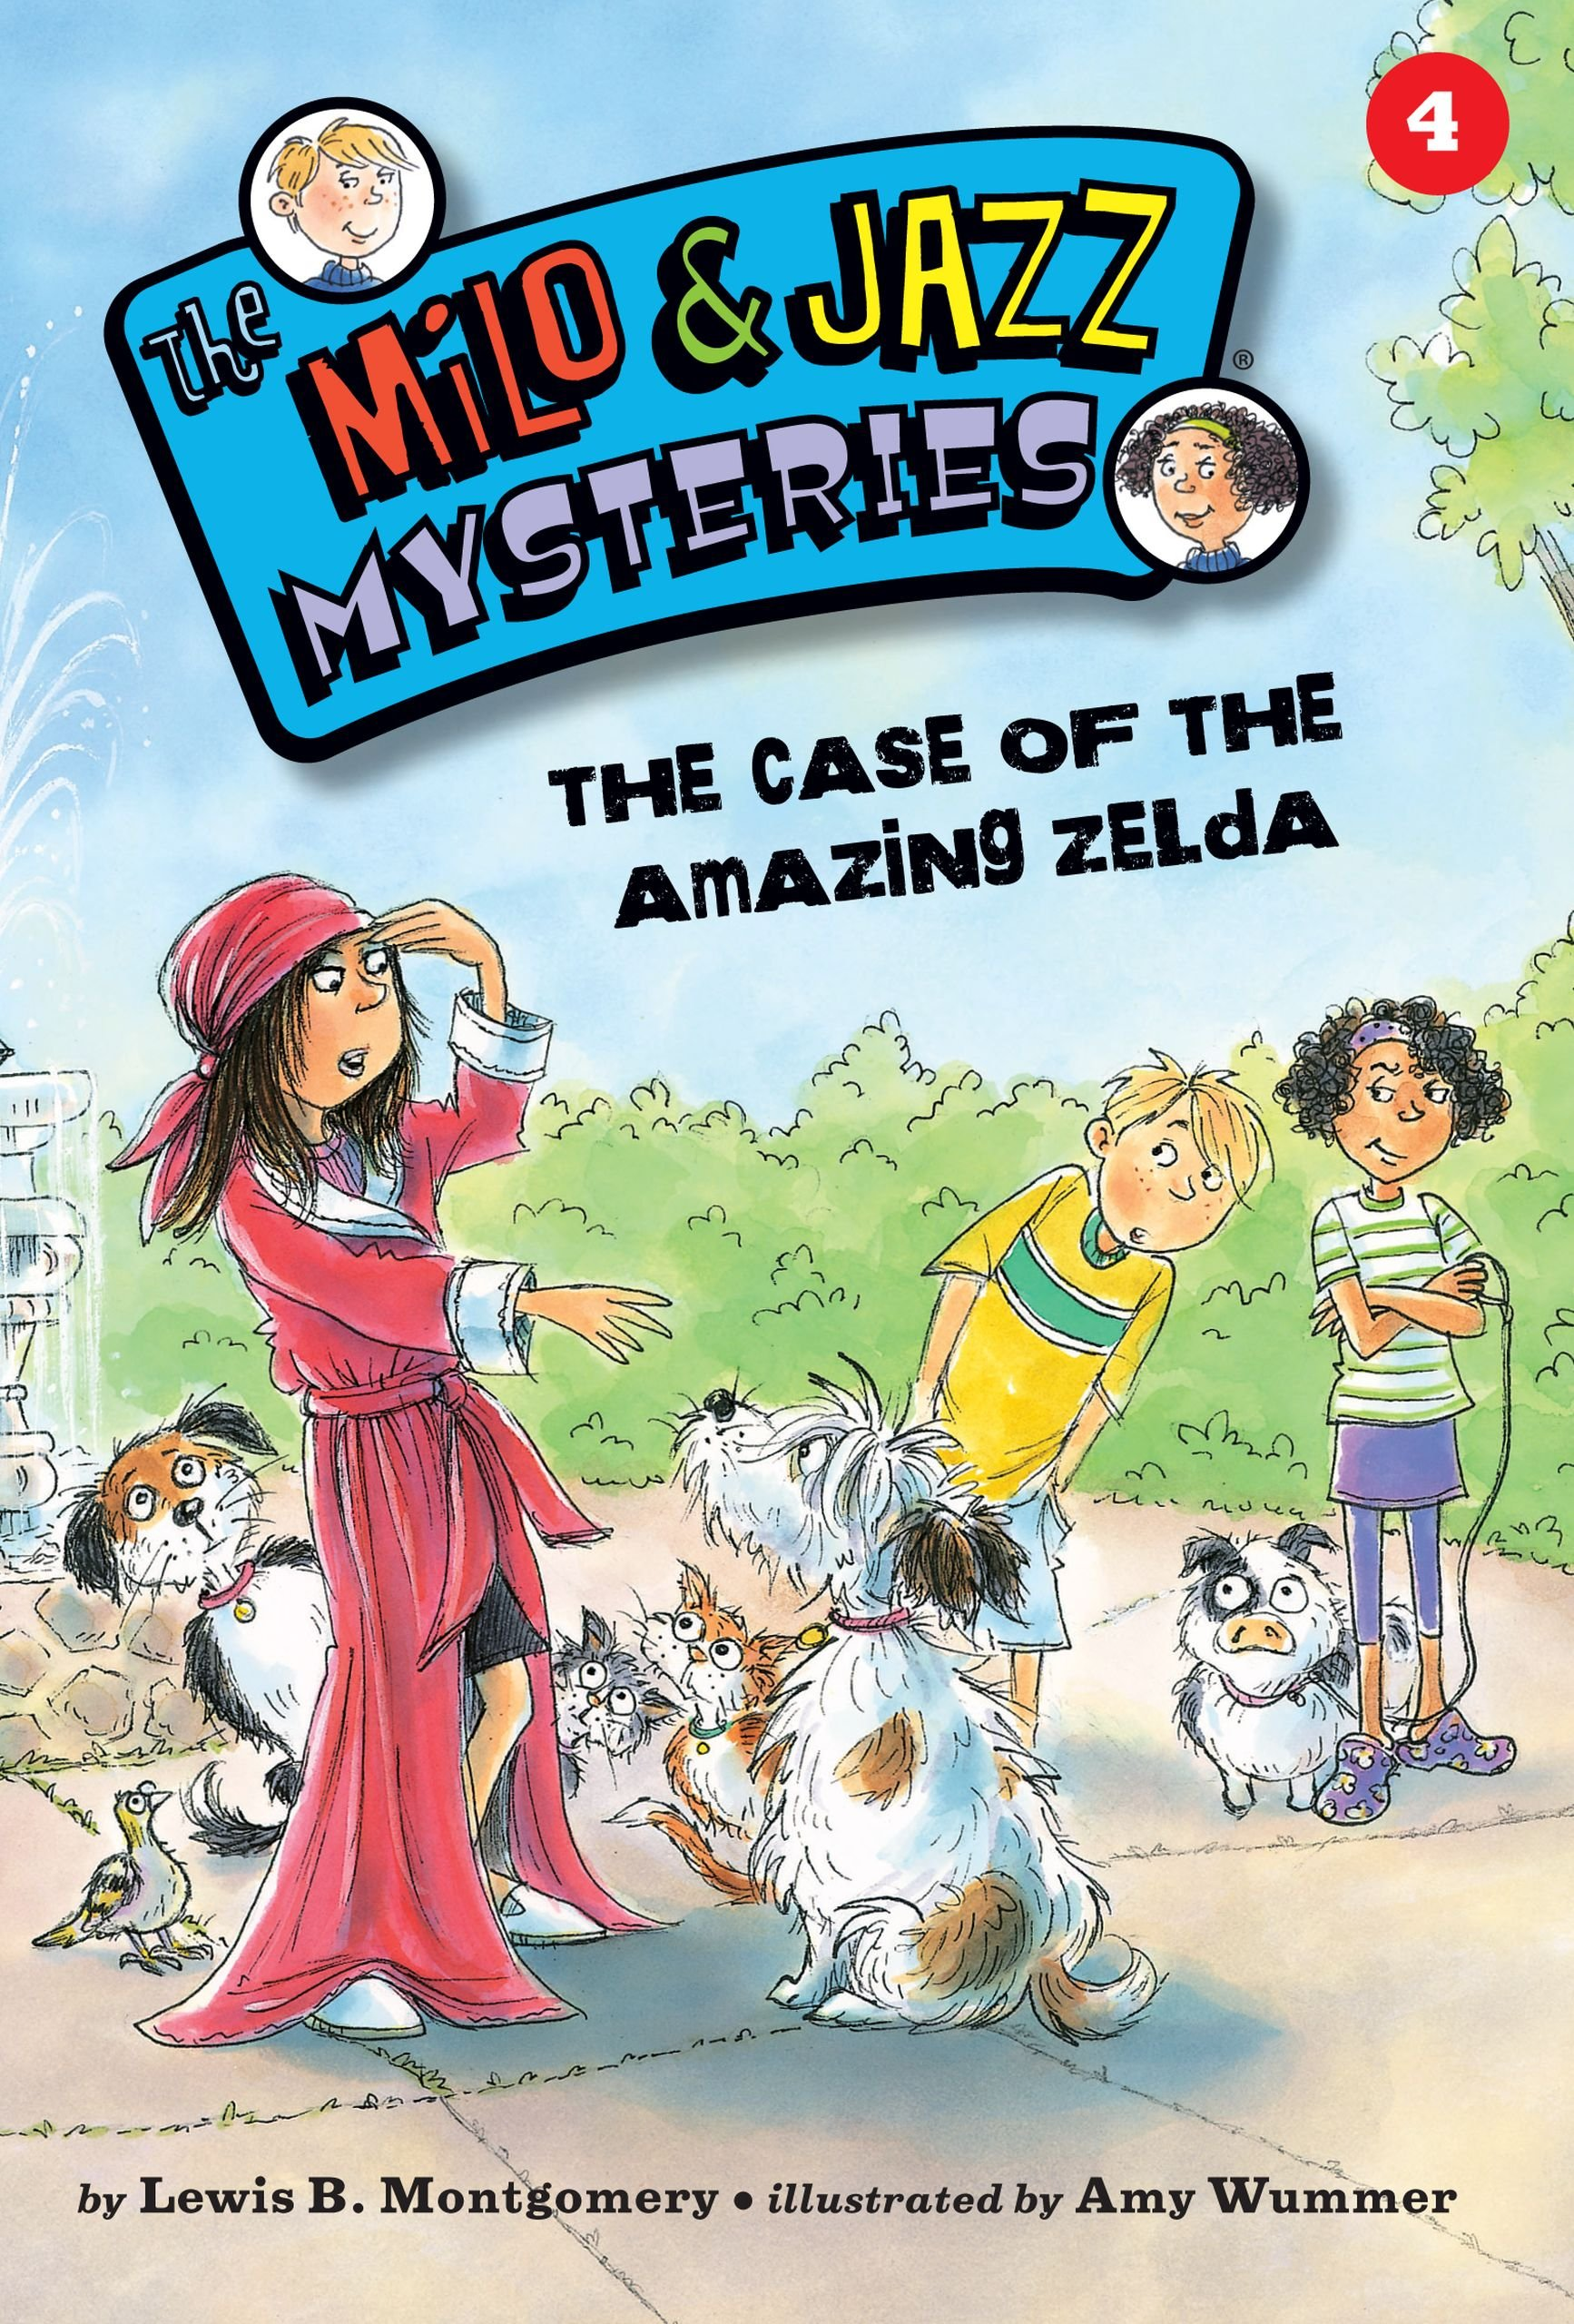 The Case of the Amazing Zelda (Book 4) (Milo and Jazz Mysteries) PDF